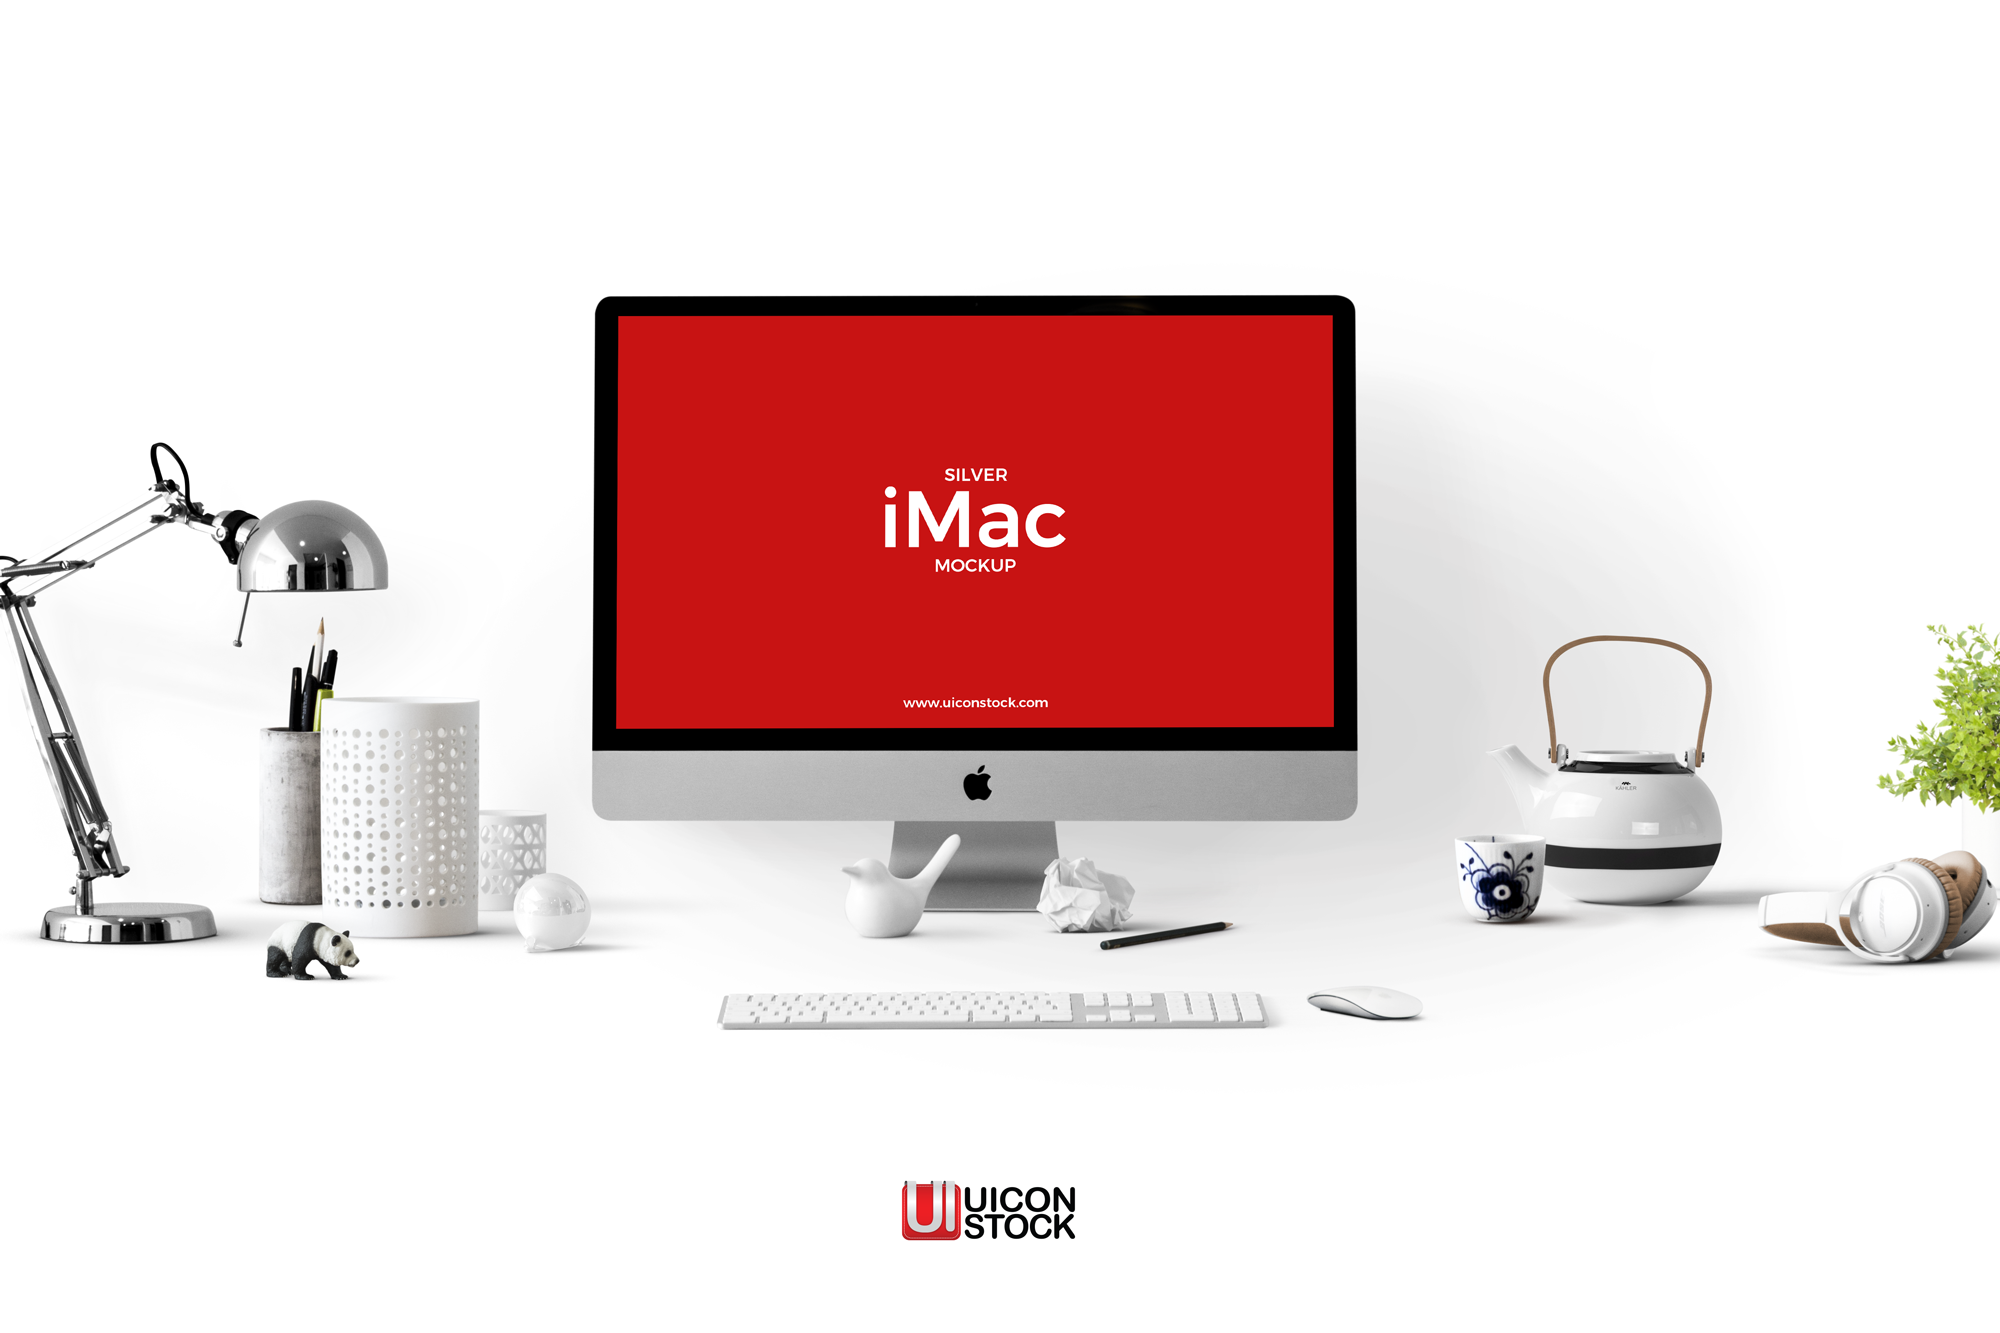 Free-Silver-iMac-Mockup-PSD-Template